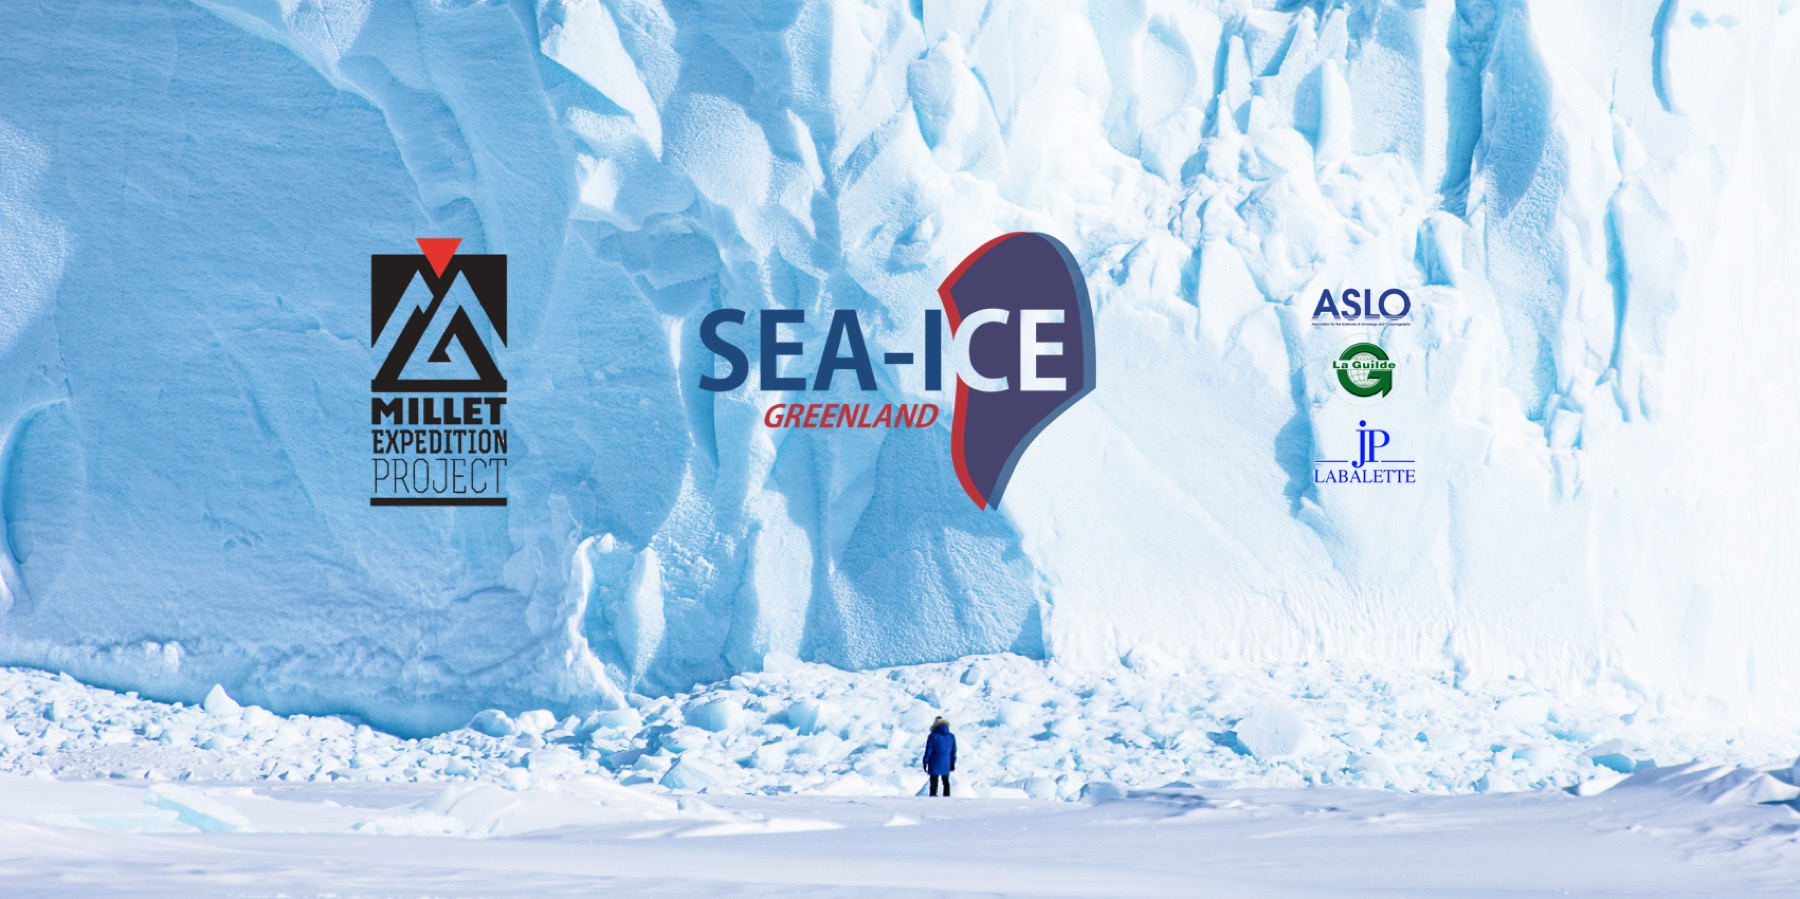 Expédition Sea-Ice Greenland